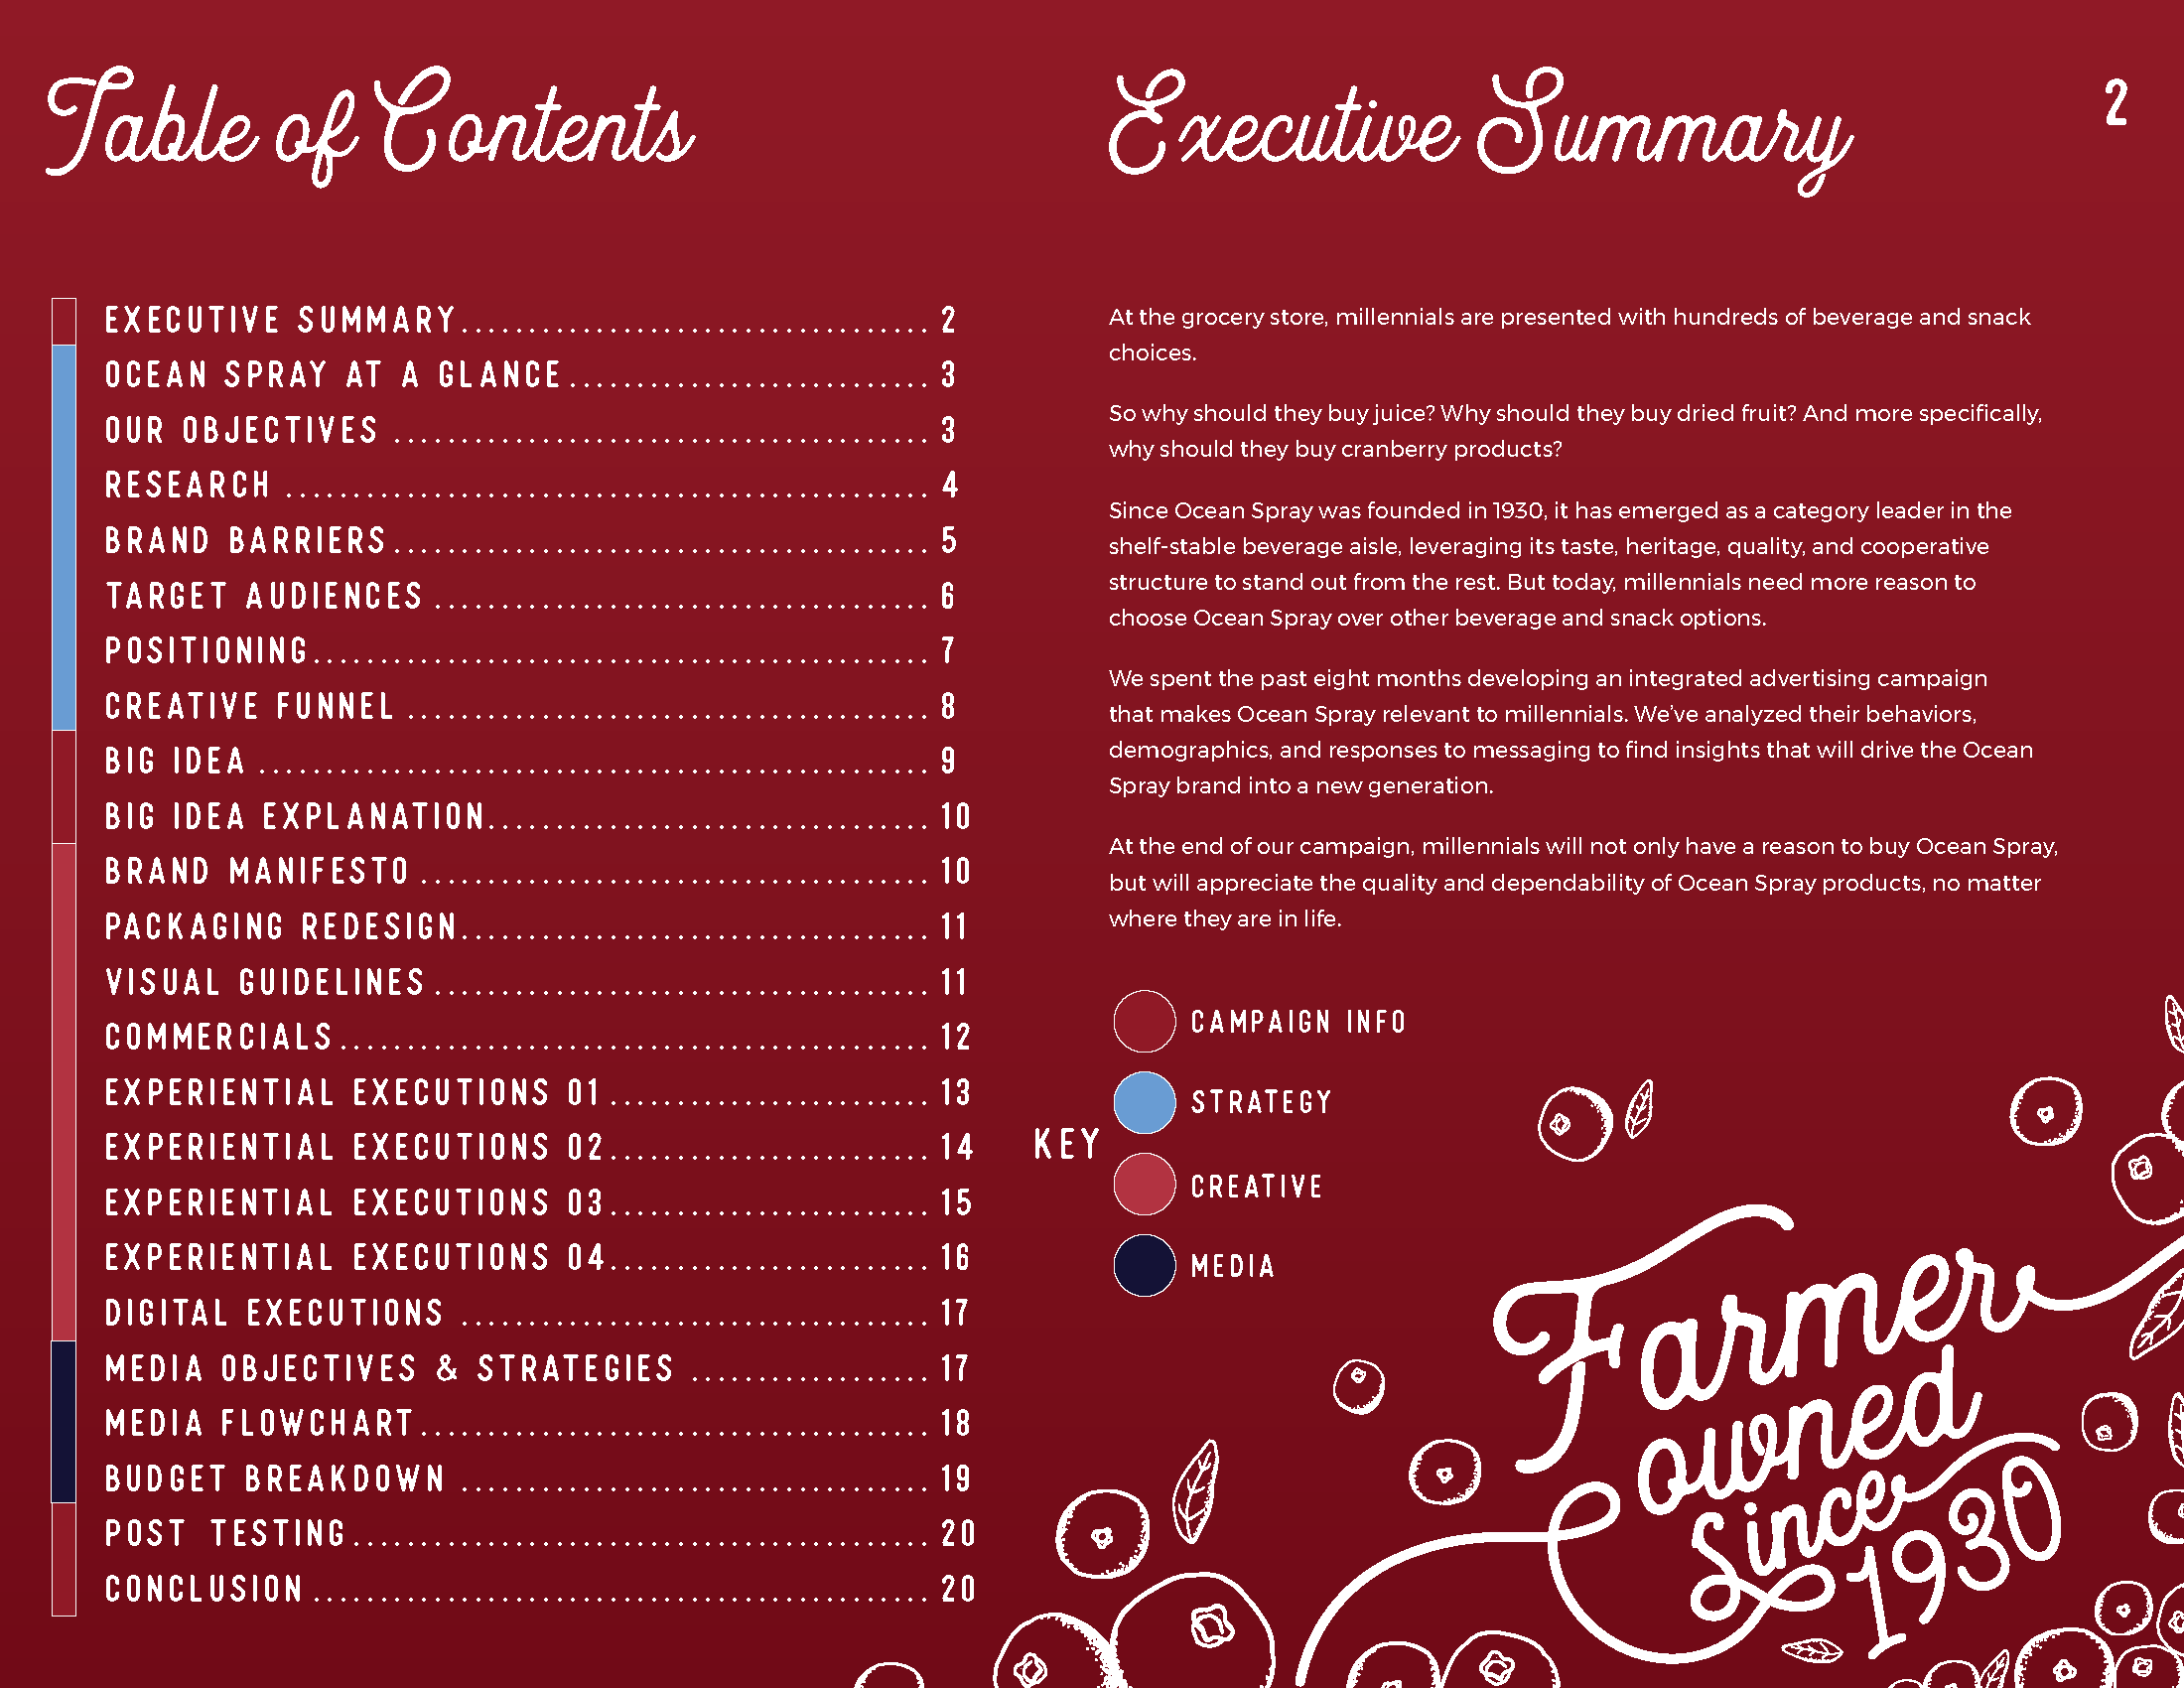 NSAC2018_TEAM206_OceanSpray_FinalPlansBook_Page_02.png